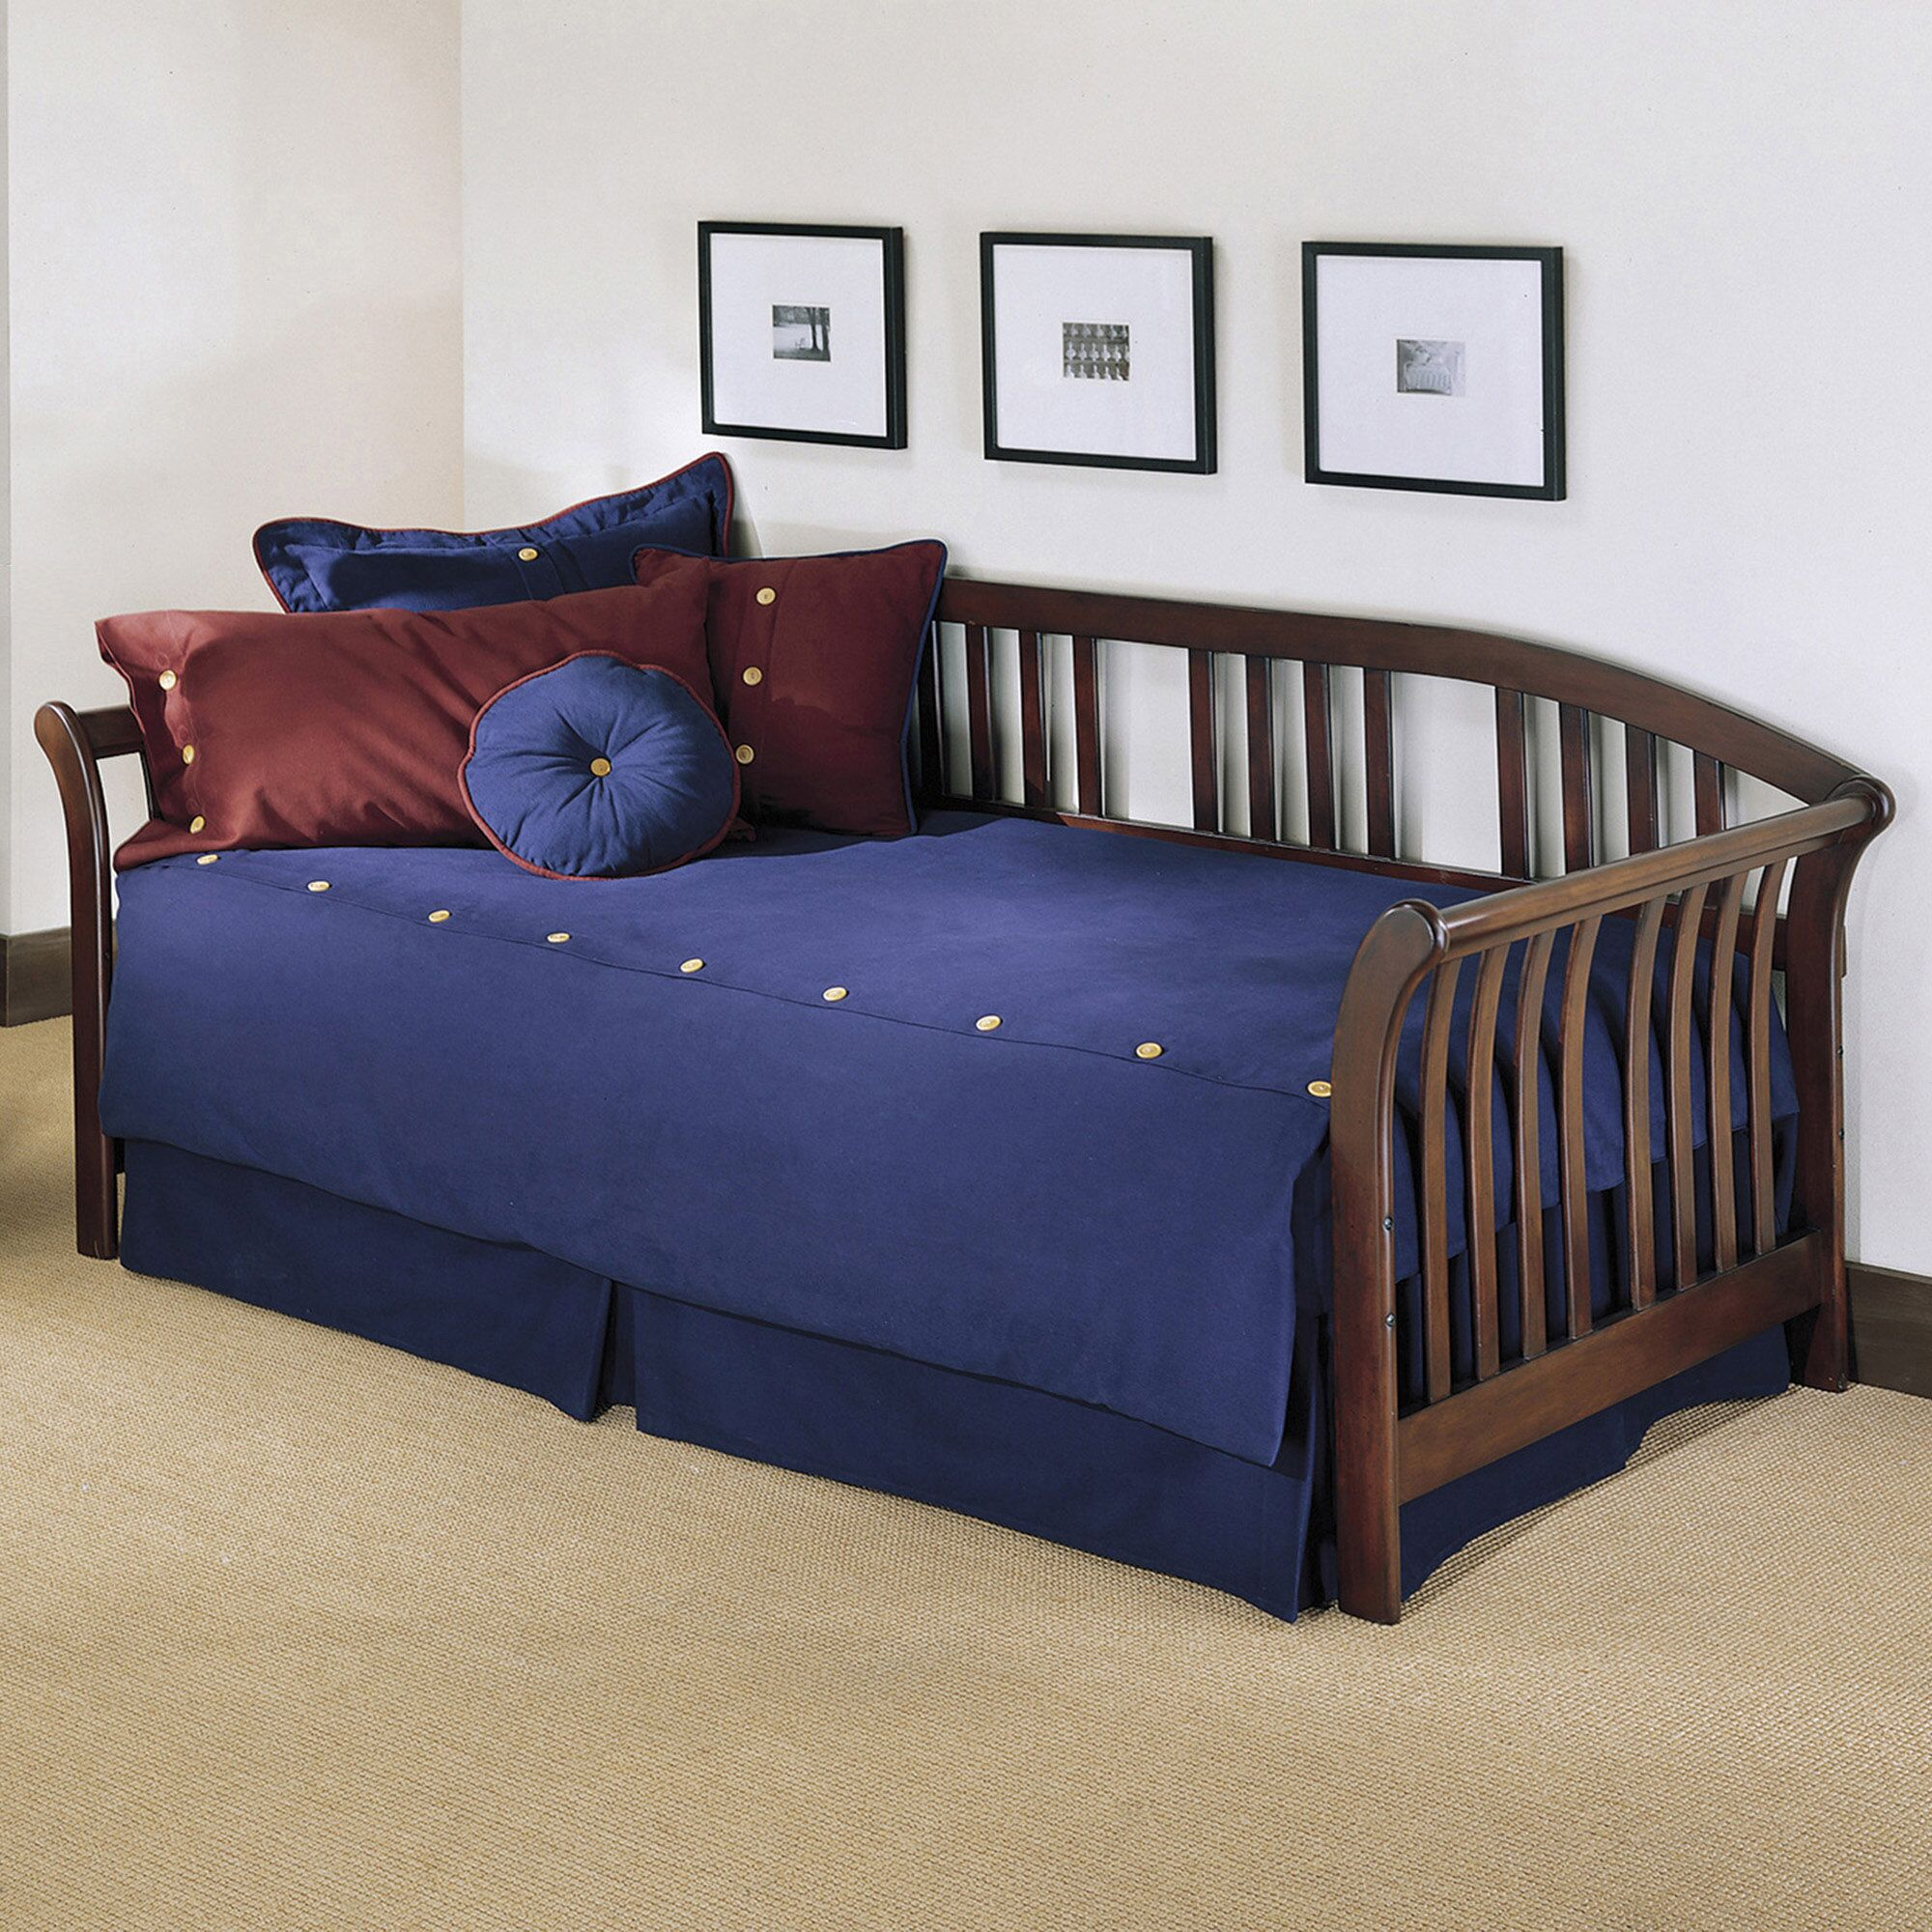 Salem Daybed Accessories: Euro Top Slat